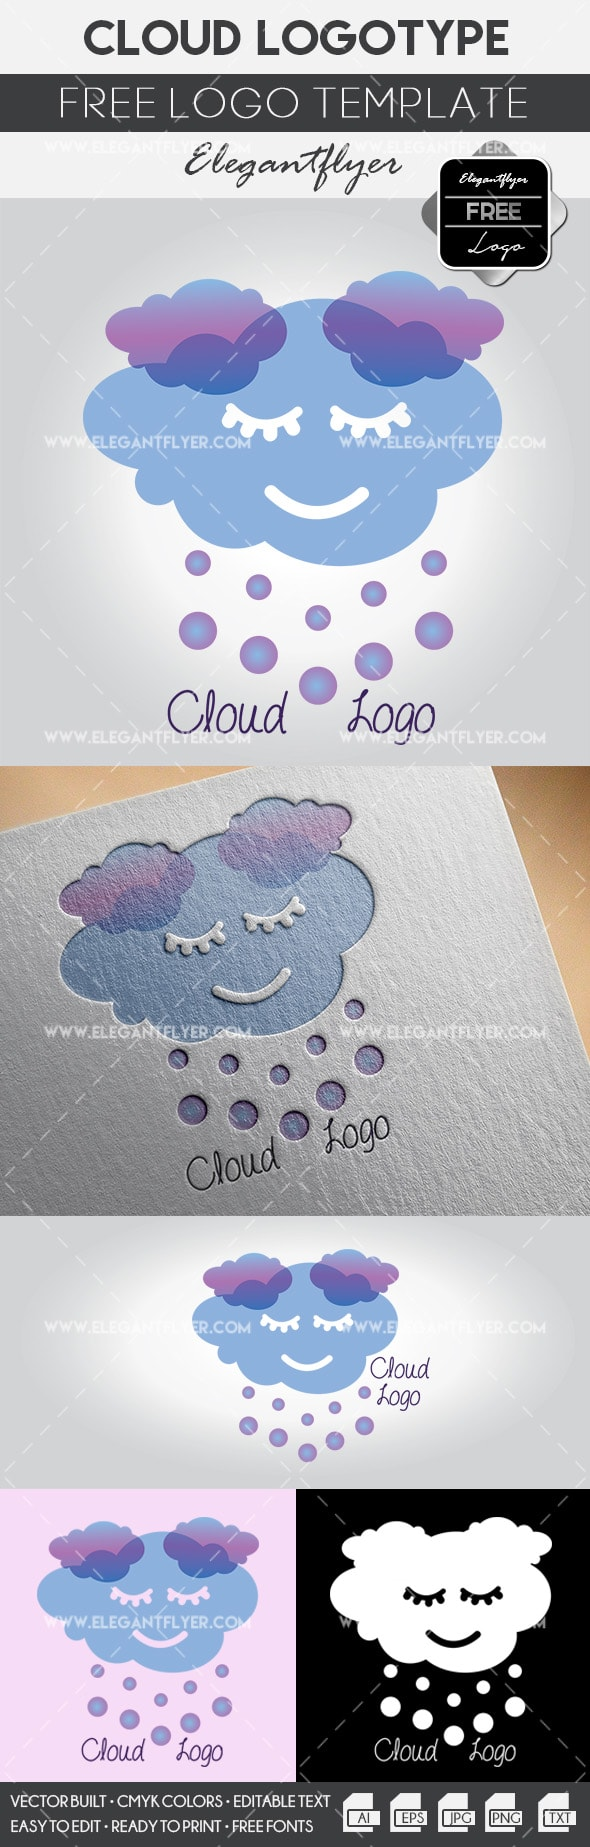 Cloud – Free Logo Template